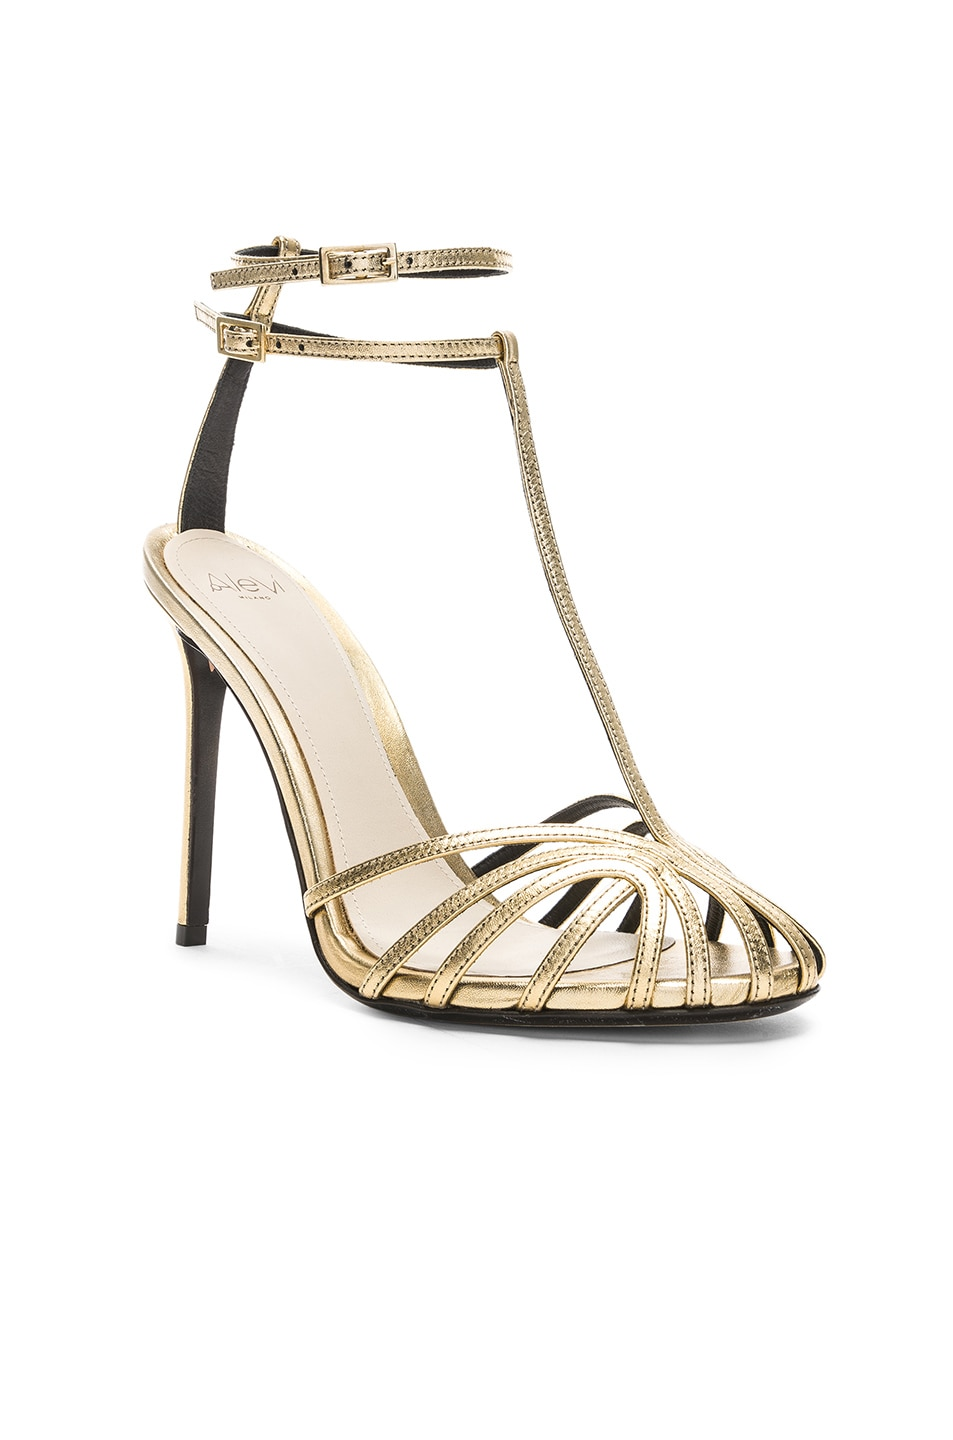 Image 2 of ALEVI Milano Alevi Stella Sandal in Shine Light Gold